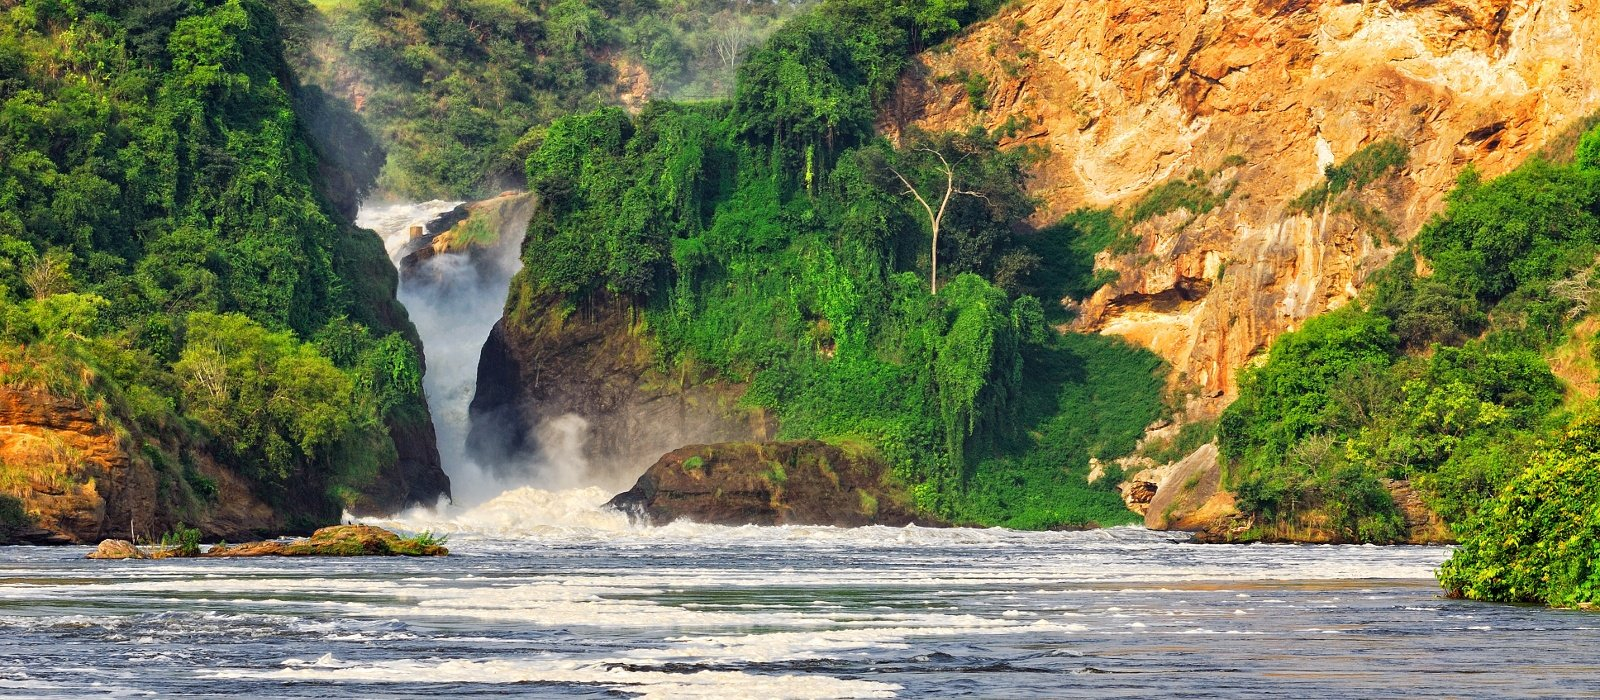 Destination Uganda Safari - Murchison Falls